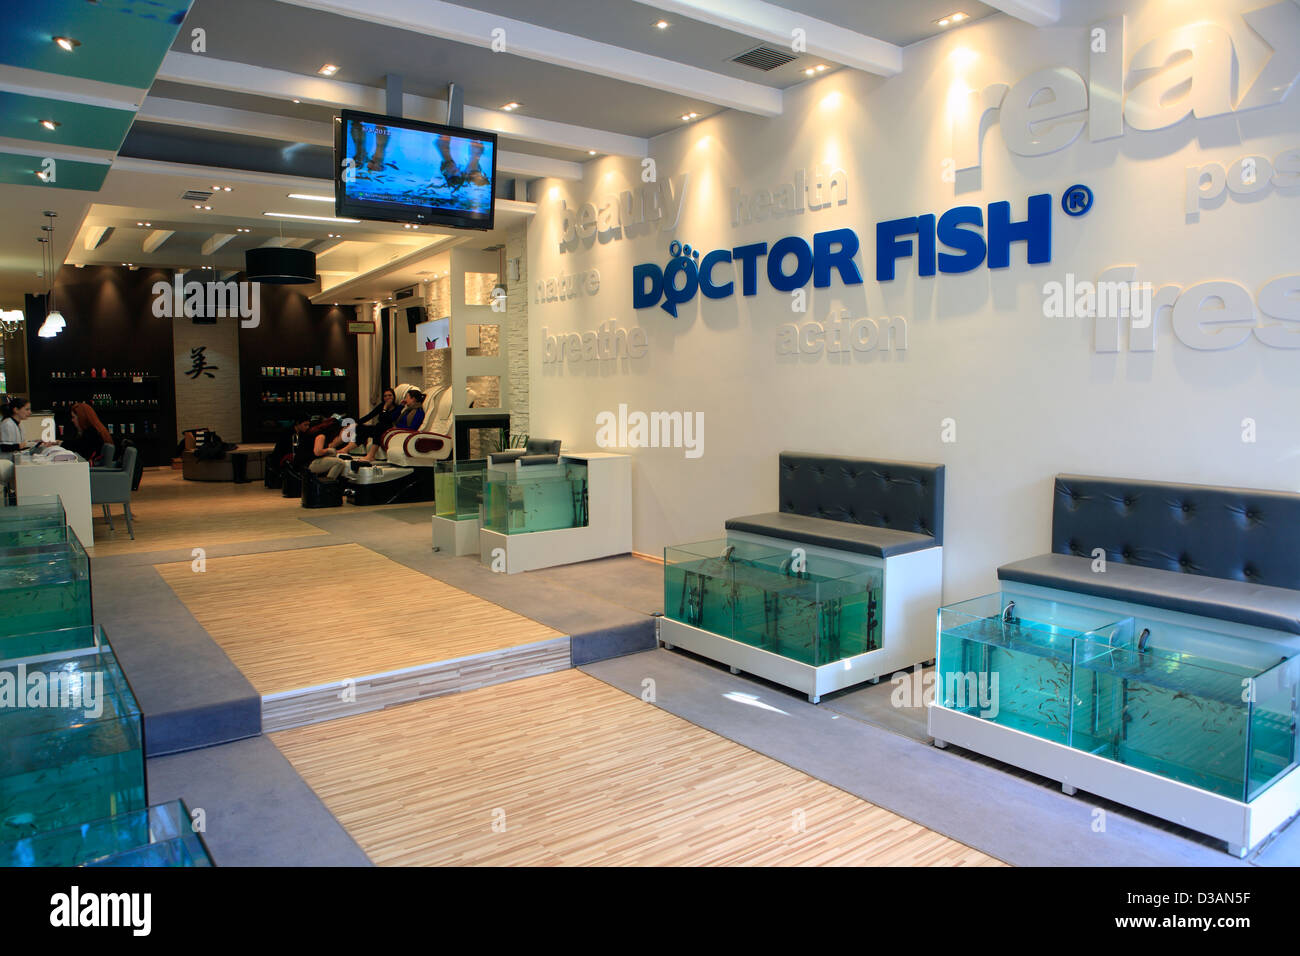 greece athens plaka adrianou street doctor fish foot therapy and day spa - Stock Image